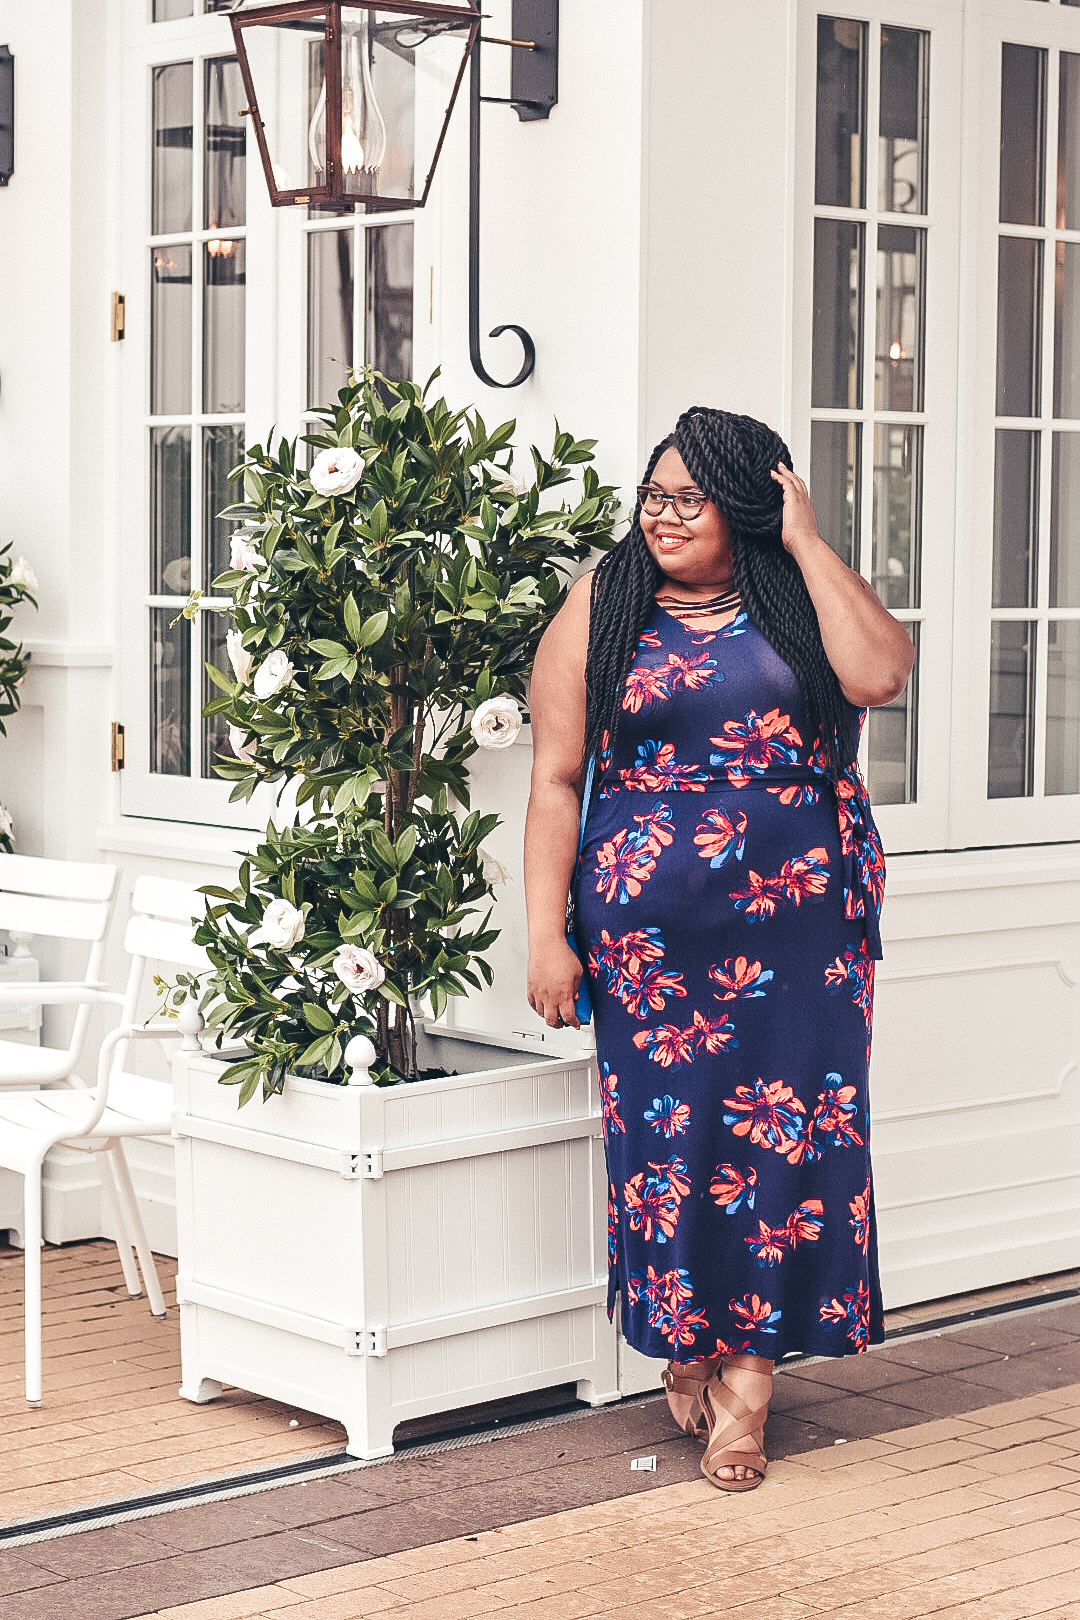 4th of July Floral Maxi Dress